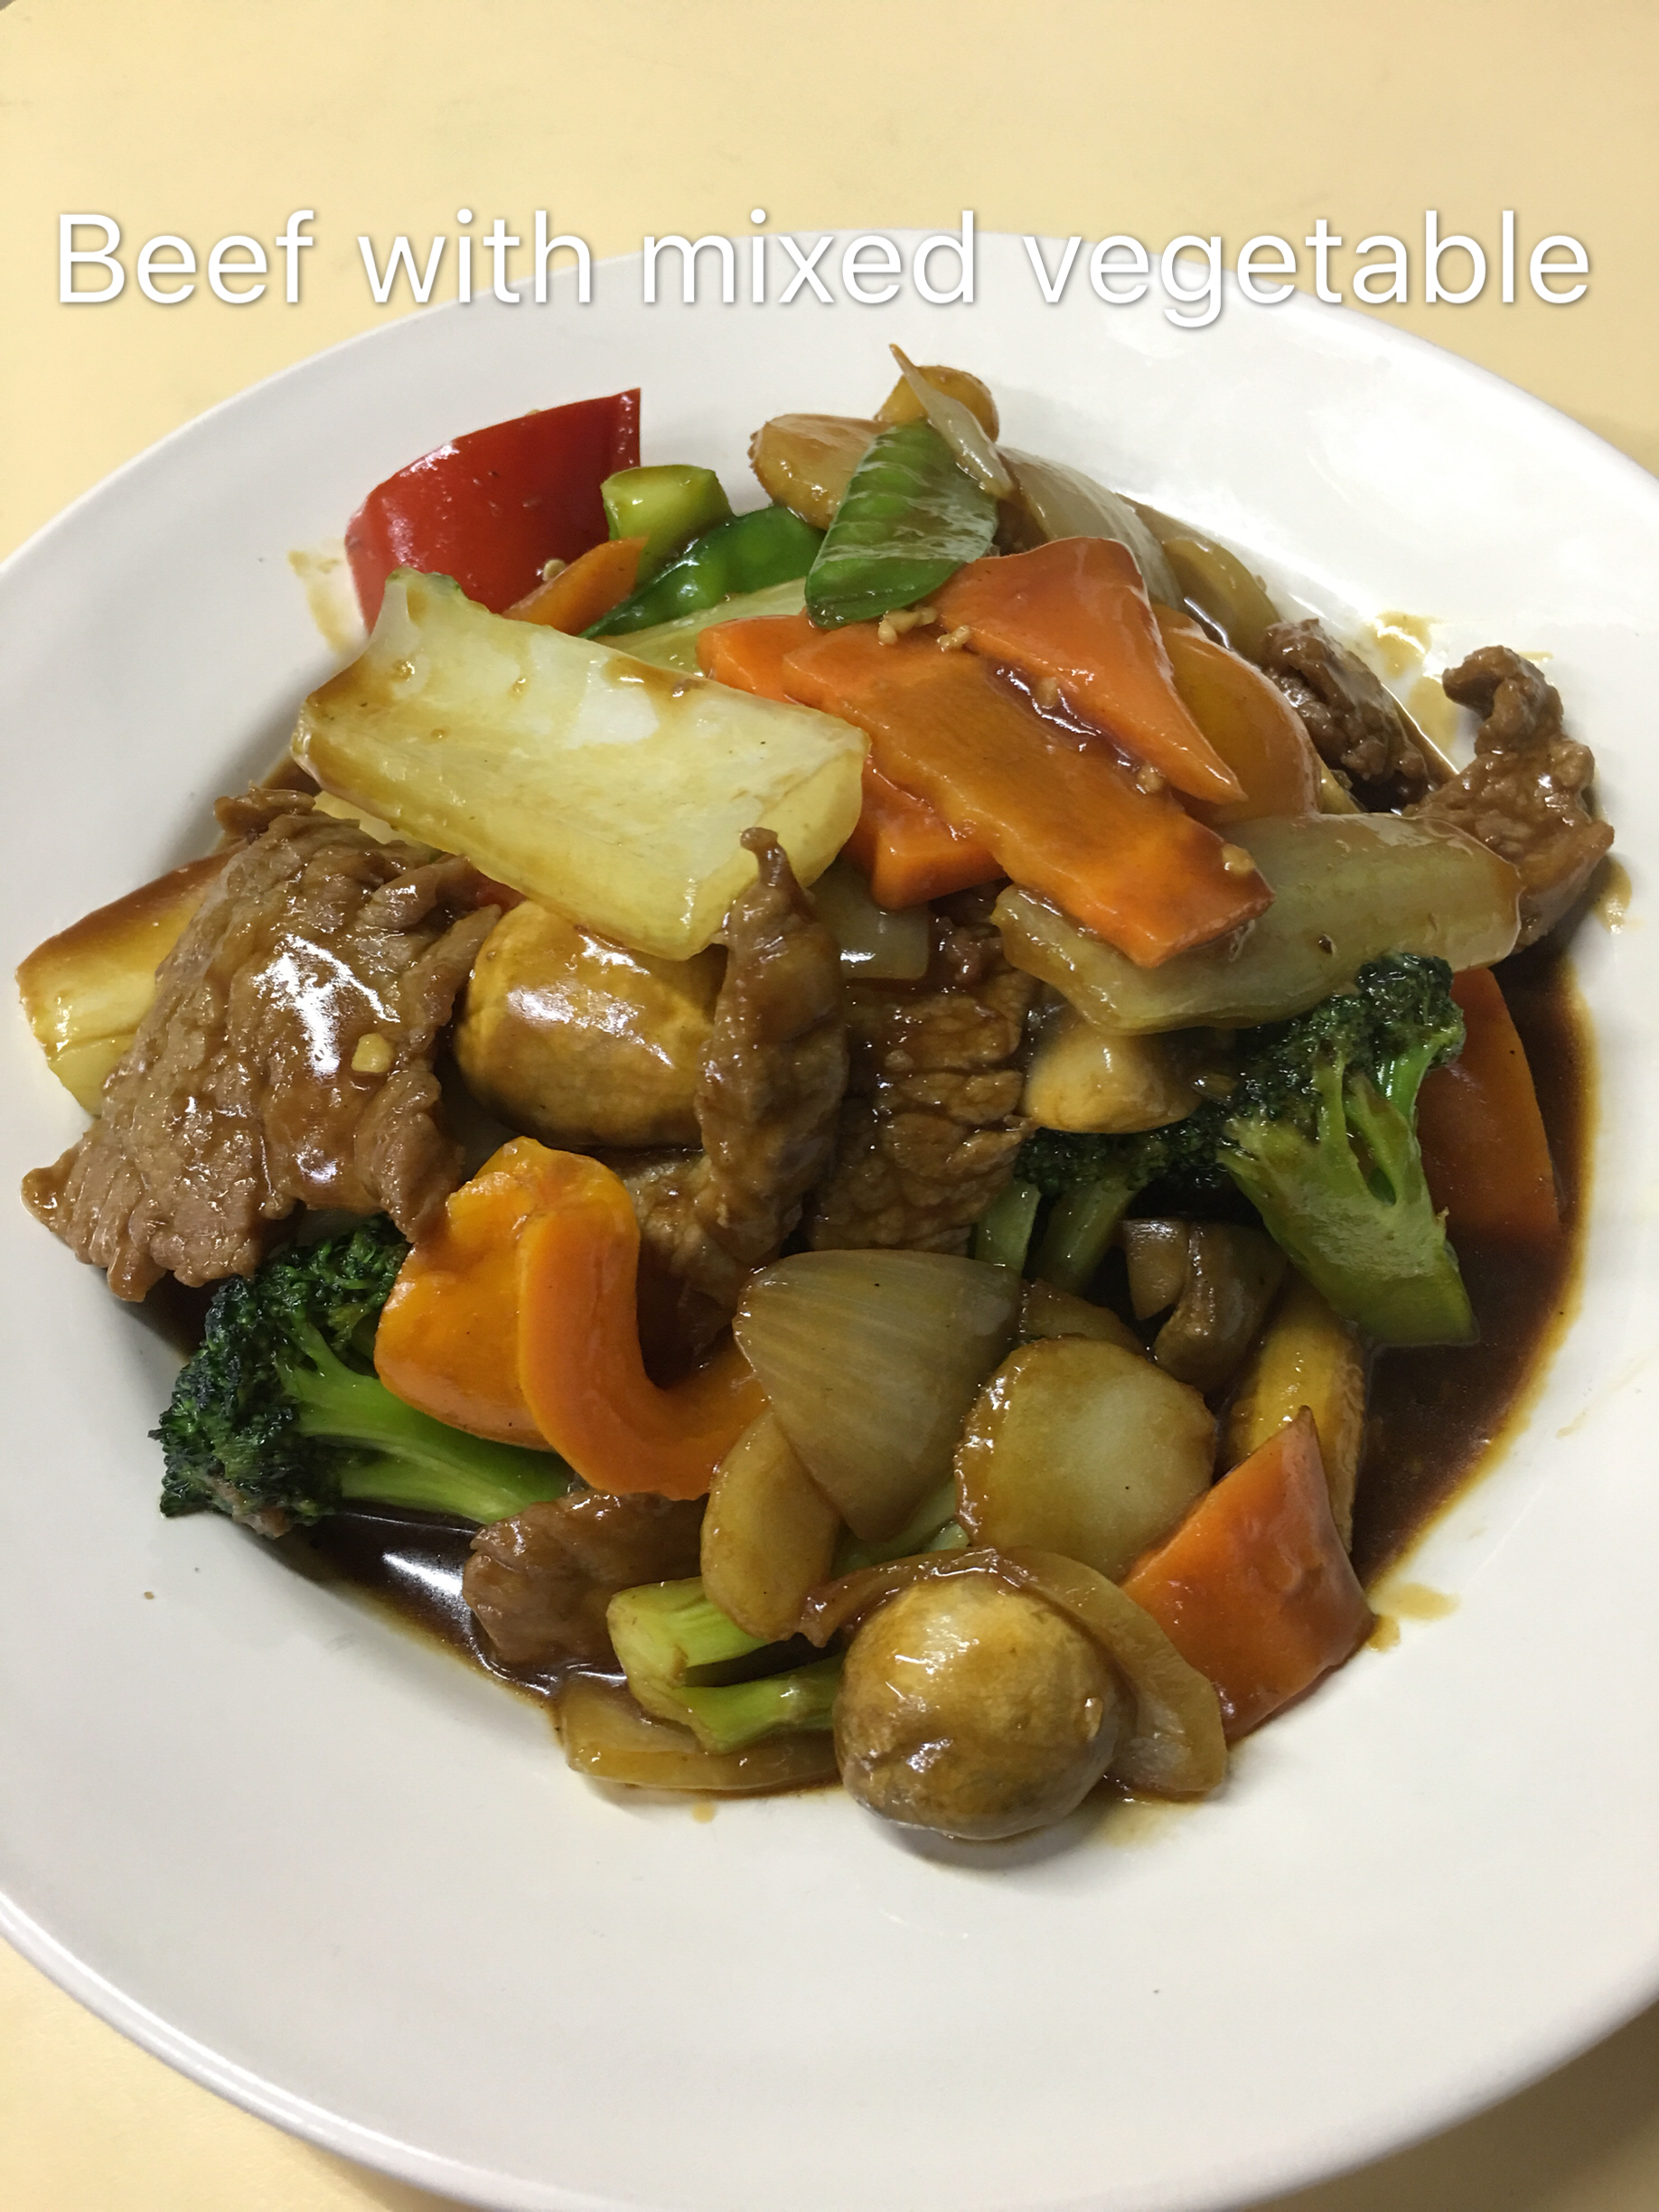 Beef with Mixed Vegetable Image